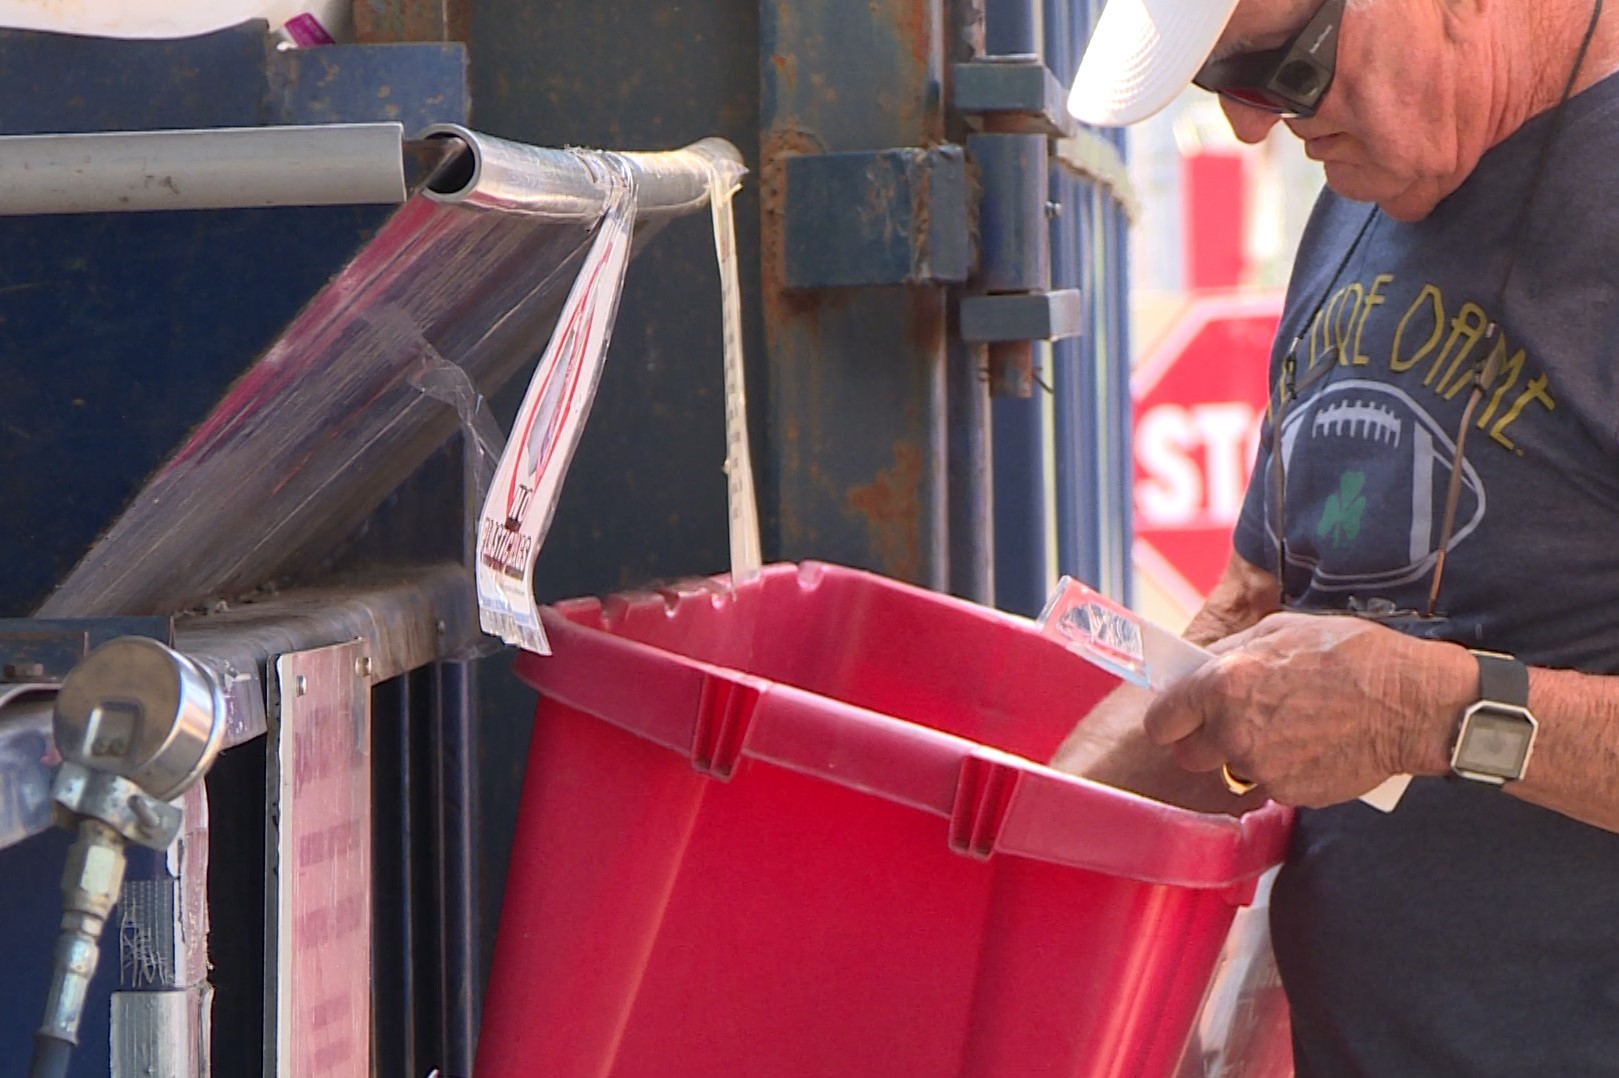 Man recycles at solid waste management district